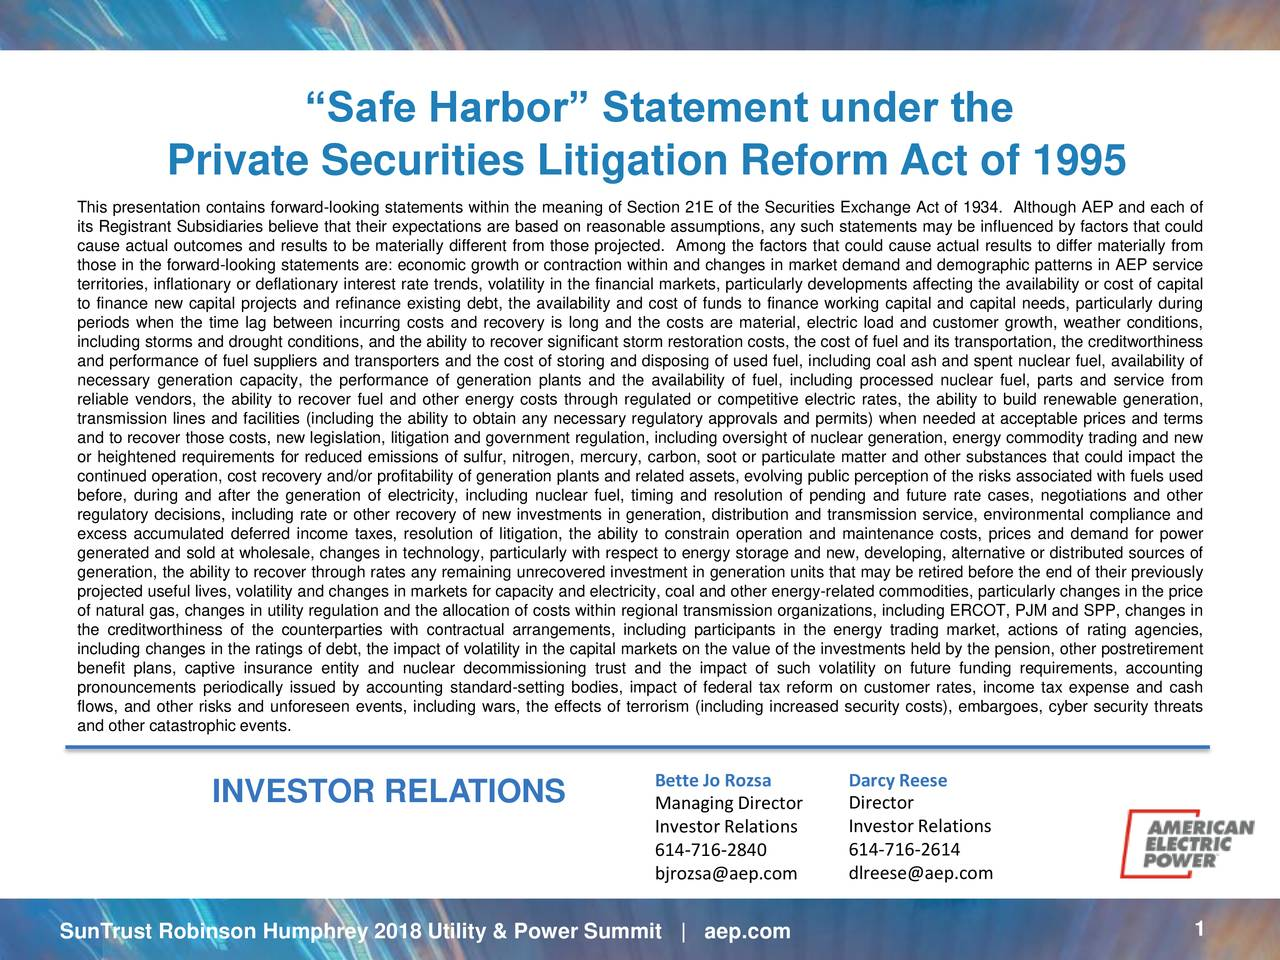 Private Securities Litigation Reform Act of 1995 This presentation contains forward-looking statements within the meaning of Section 21E of the Securities Exchange Act of 1934. Although AEP and each of its Registrant Subsidiaries believe that their expectations are based on reasonable assumptions, any such statements may be influenced by factors that could cause actual outcomes and results to be materially different from those projected. Among the factors that could cause actual results to differ materially from those in the forward-looking statements are: economic growth or contraction within and changes in market demand and demographic patterns in AEP service territories, inflationary or deflationary interest rate trends, volatility in the financial markets, particularly developments affecting the availability or cost of capital to finance new capital projects and refinance existing debt, the availability and cost of funds to finance working capital and capital needs, particularly during periods when the time lag between incurring costs and recovery is long and the costs are material, electric load and customer growth, weather conditions, including storms and drought conditions, and the ability to recover significant storm restoration costs, the cost of fuel and its transportation, the creditworthiness and performance of fuel suppliers and transporters and the cost of storing and disposing of used fuel, including coal ash and spent nuclear fuel, availability of necessary generation capacity, the performance of generation plants and the availability of fuel, including processed nuclear fuel, parts and service from reliable vendors, the ability to recover fuel and other energy costs through regulated or competitive electric rates, the ability to build renewable generation, transmission lines and facilities (including the ability to obtain any necessary regulatory approvals and permits) when needed at acceptable prices and terms and to recover those costs, new legisl